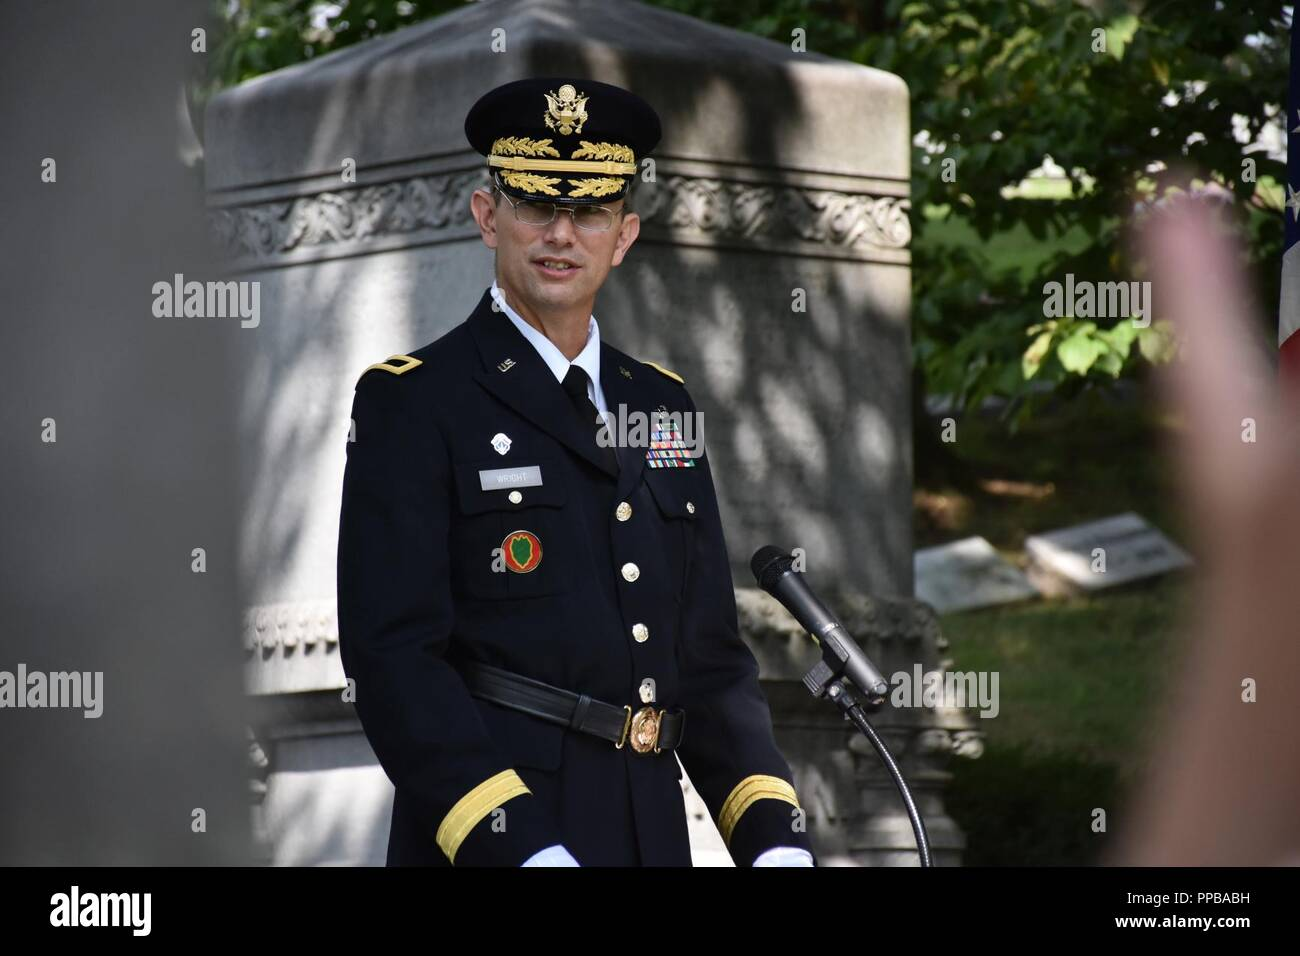 Brigadier Gen. Tony L. Wright, 88th Readiness Division deputy commanding general, speaks during at a wreath laying ceremony for President Benjamin Harrison at Crown Hill Cemetery, in Indianapolis, on Aug. 18, to commemorate the Hoosier President's 185th birthday. (US Army Stock Photo